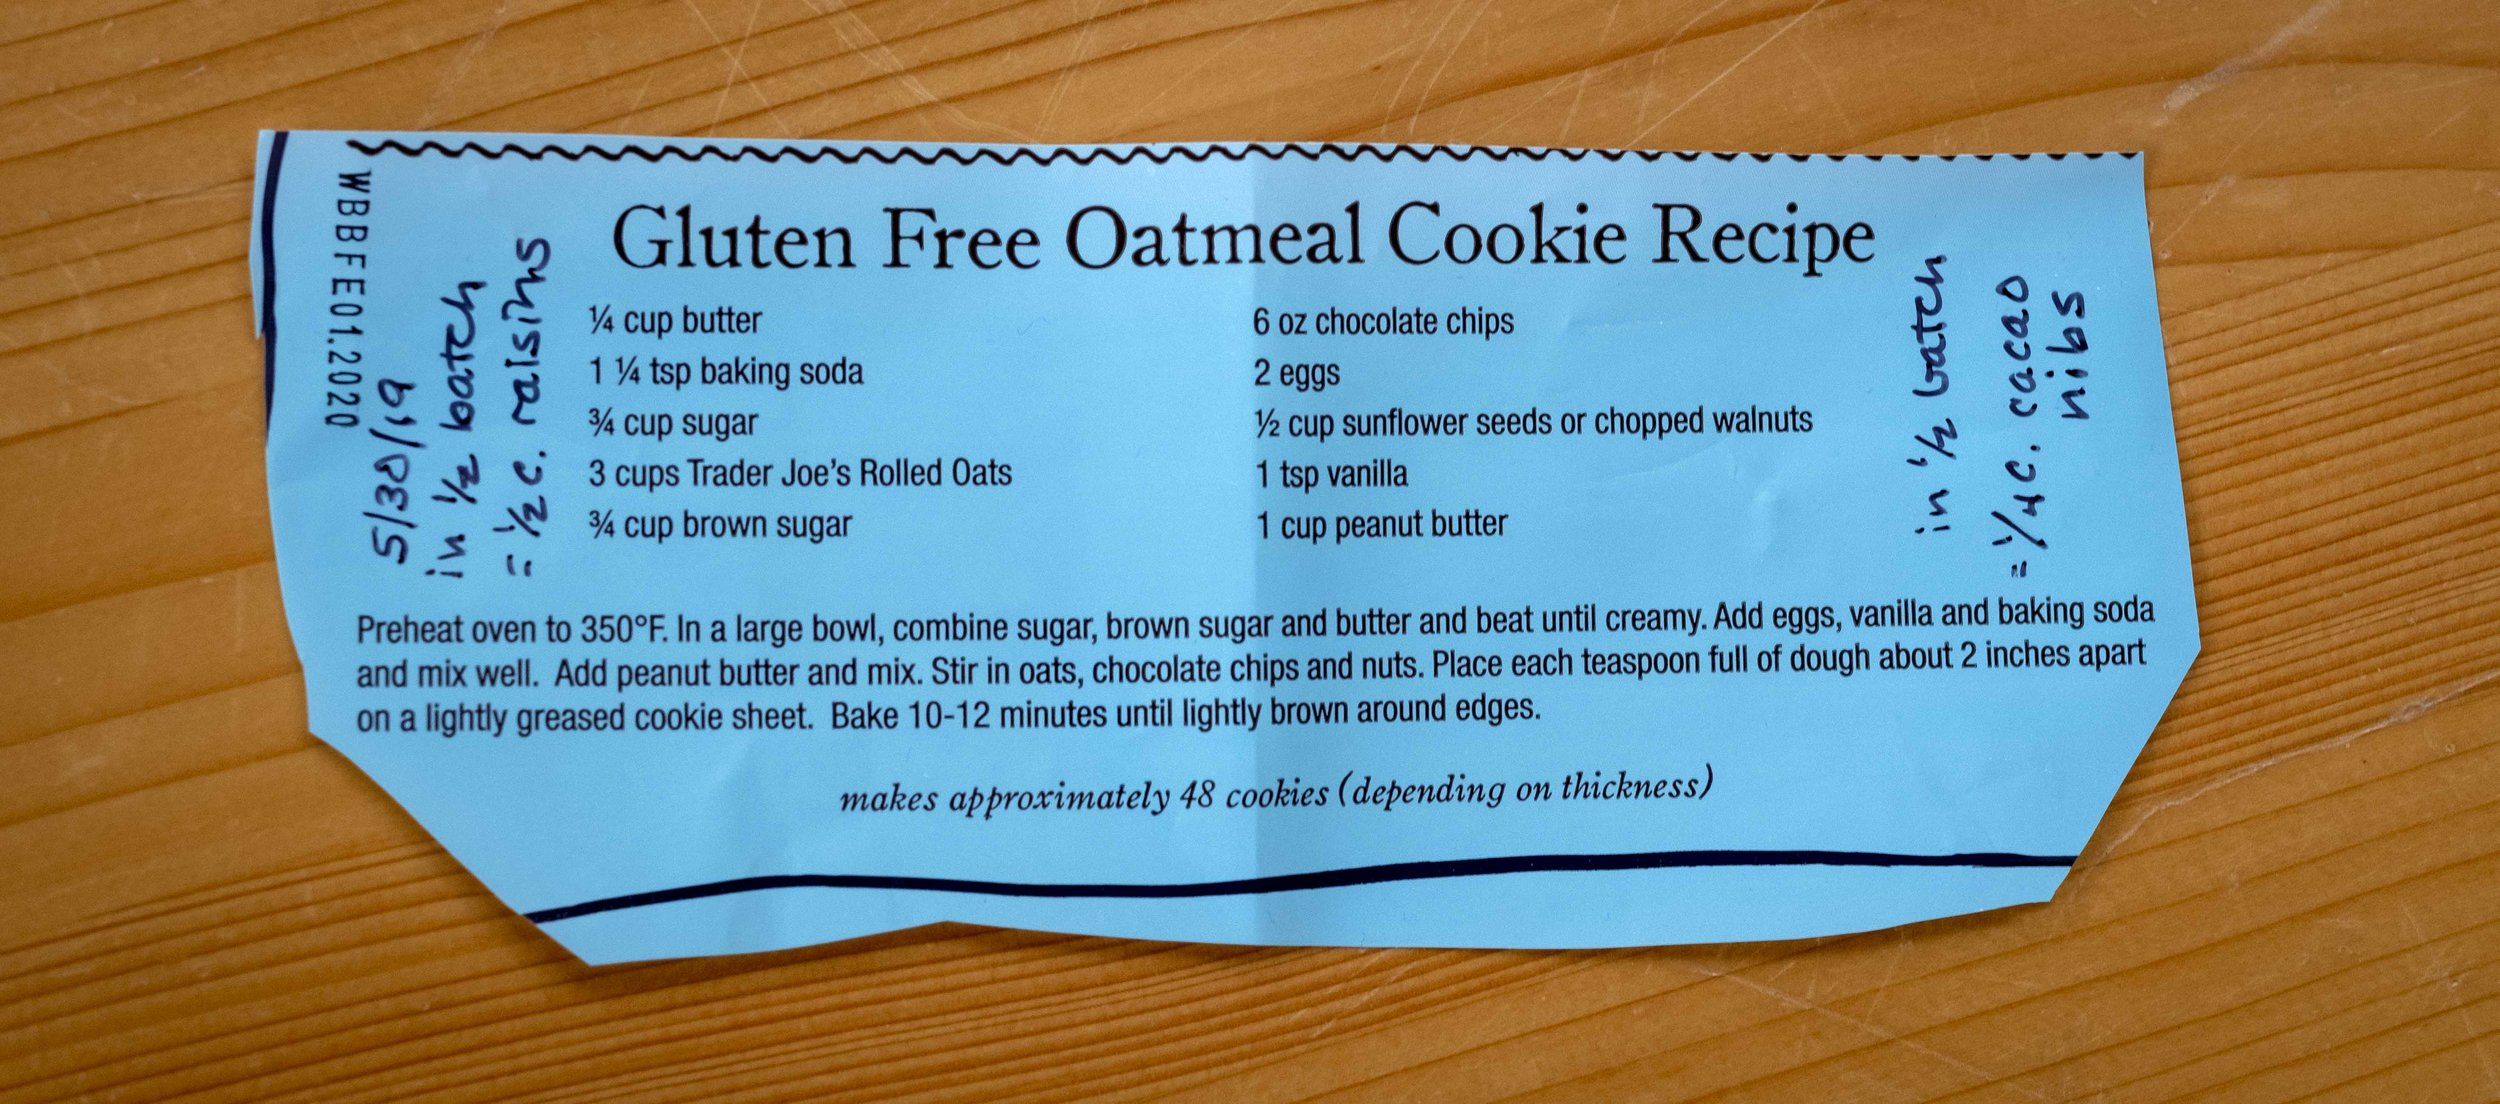 If you're looking for ways to sneak them in,  here's a cookie made with THREE vegetables . (I'm skeptical. If you try them, please let me know and I'll share your results with everyone.)